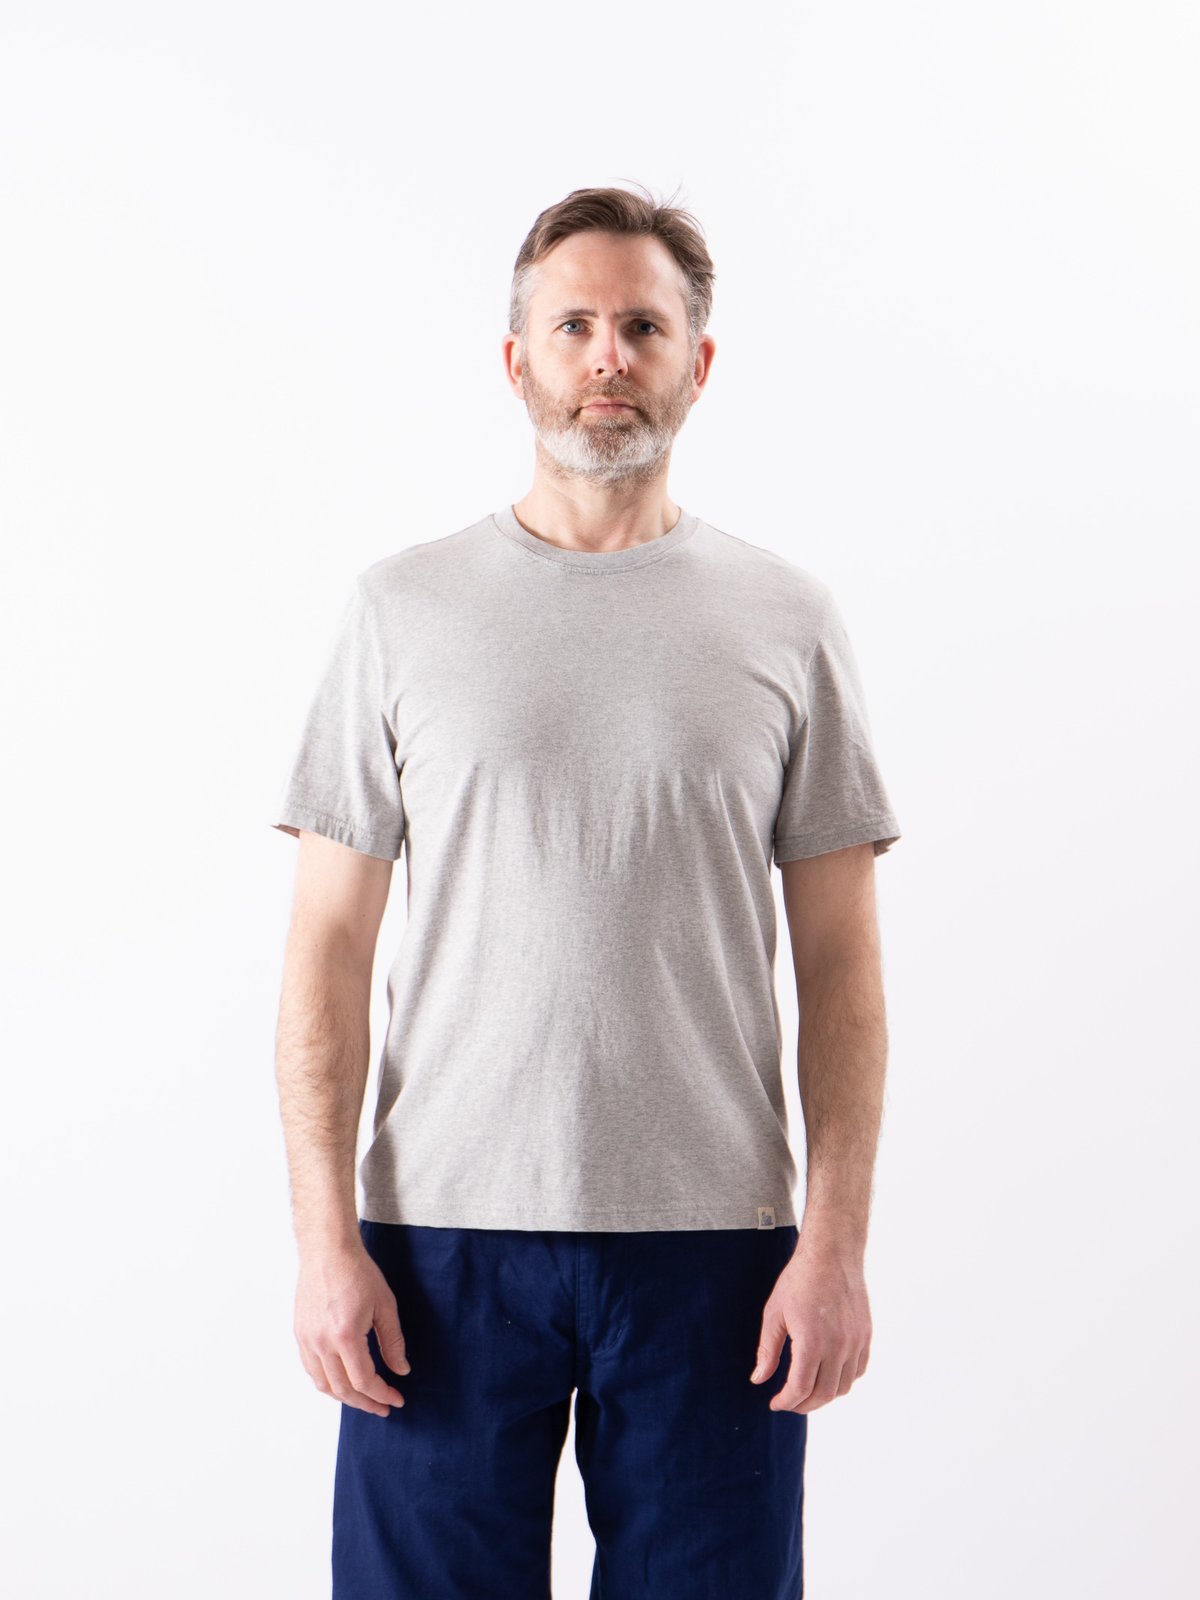 Grey Melange Good Basics CTOS01 Oversized Crew Neck Tee - Image 2